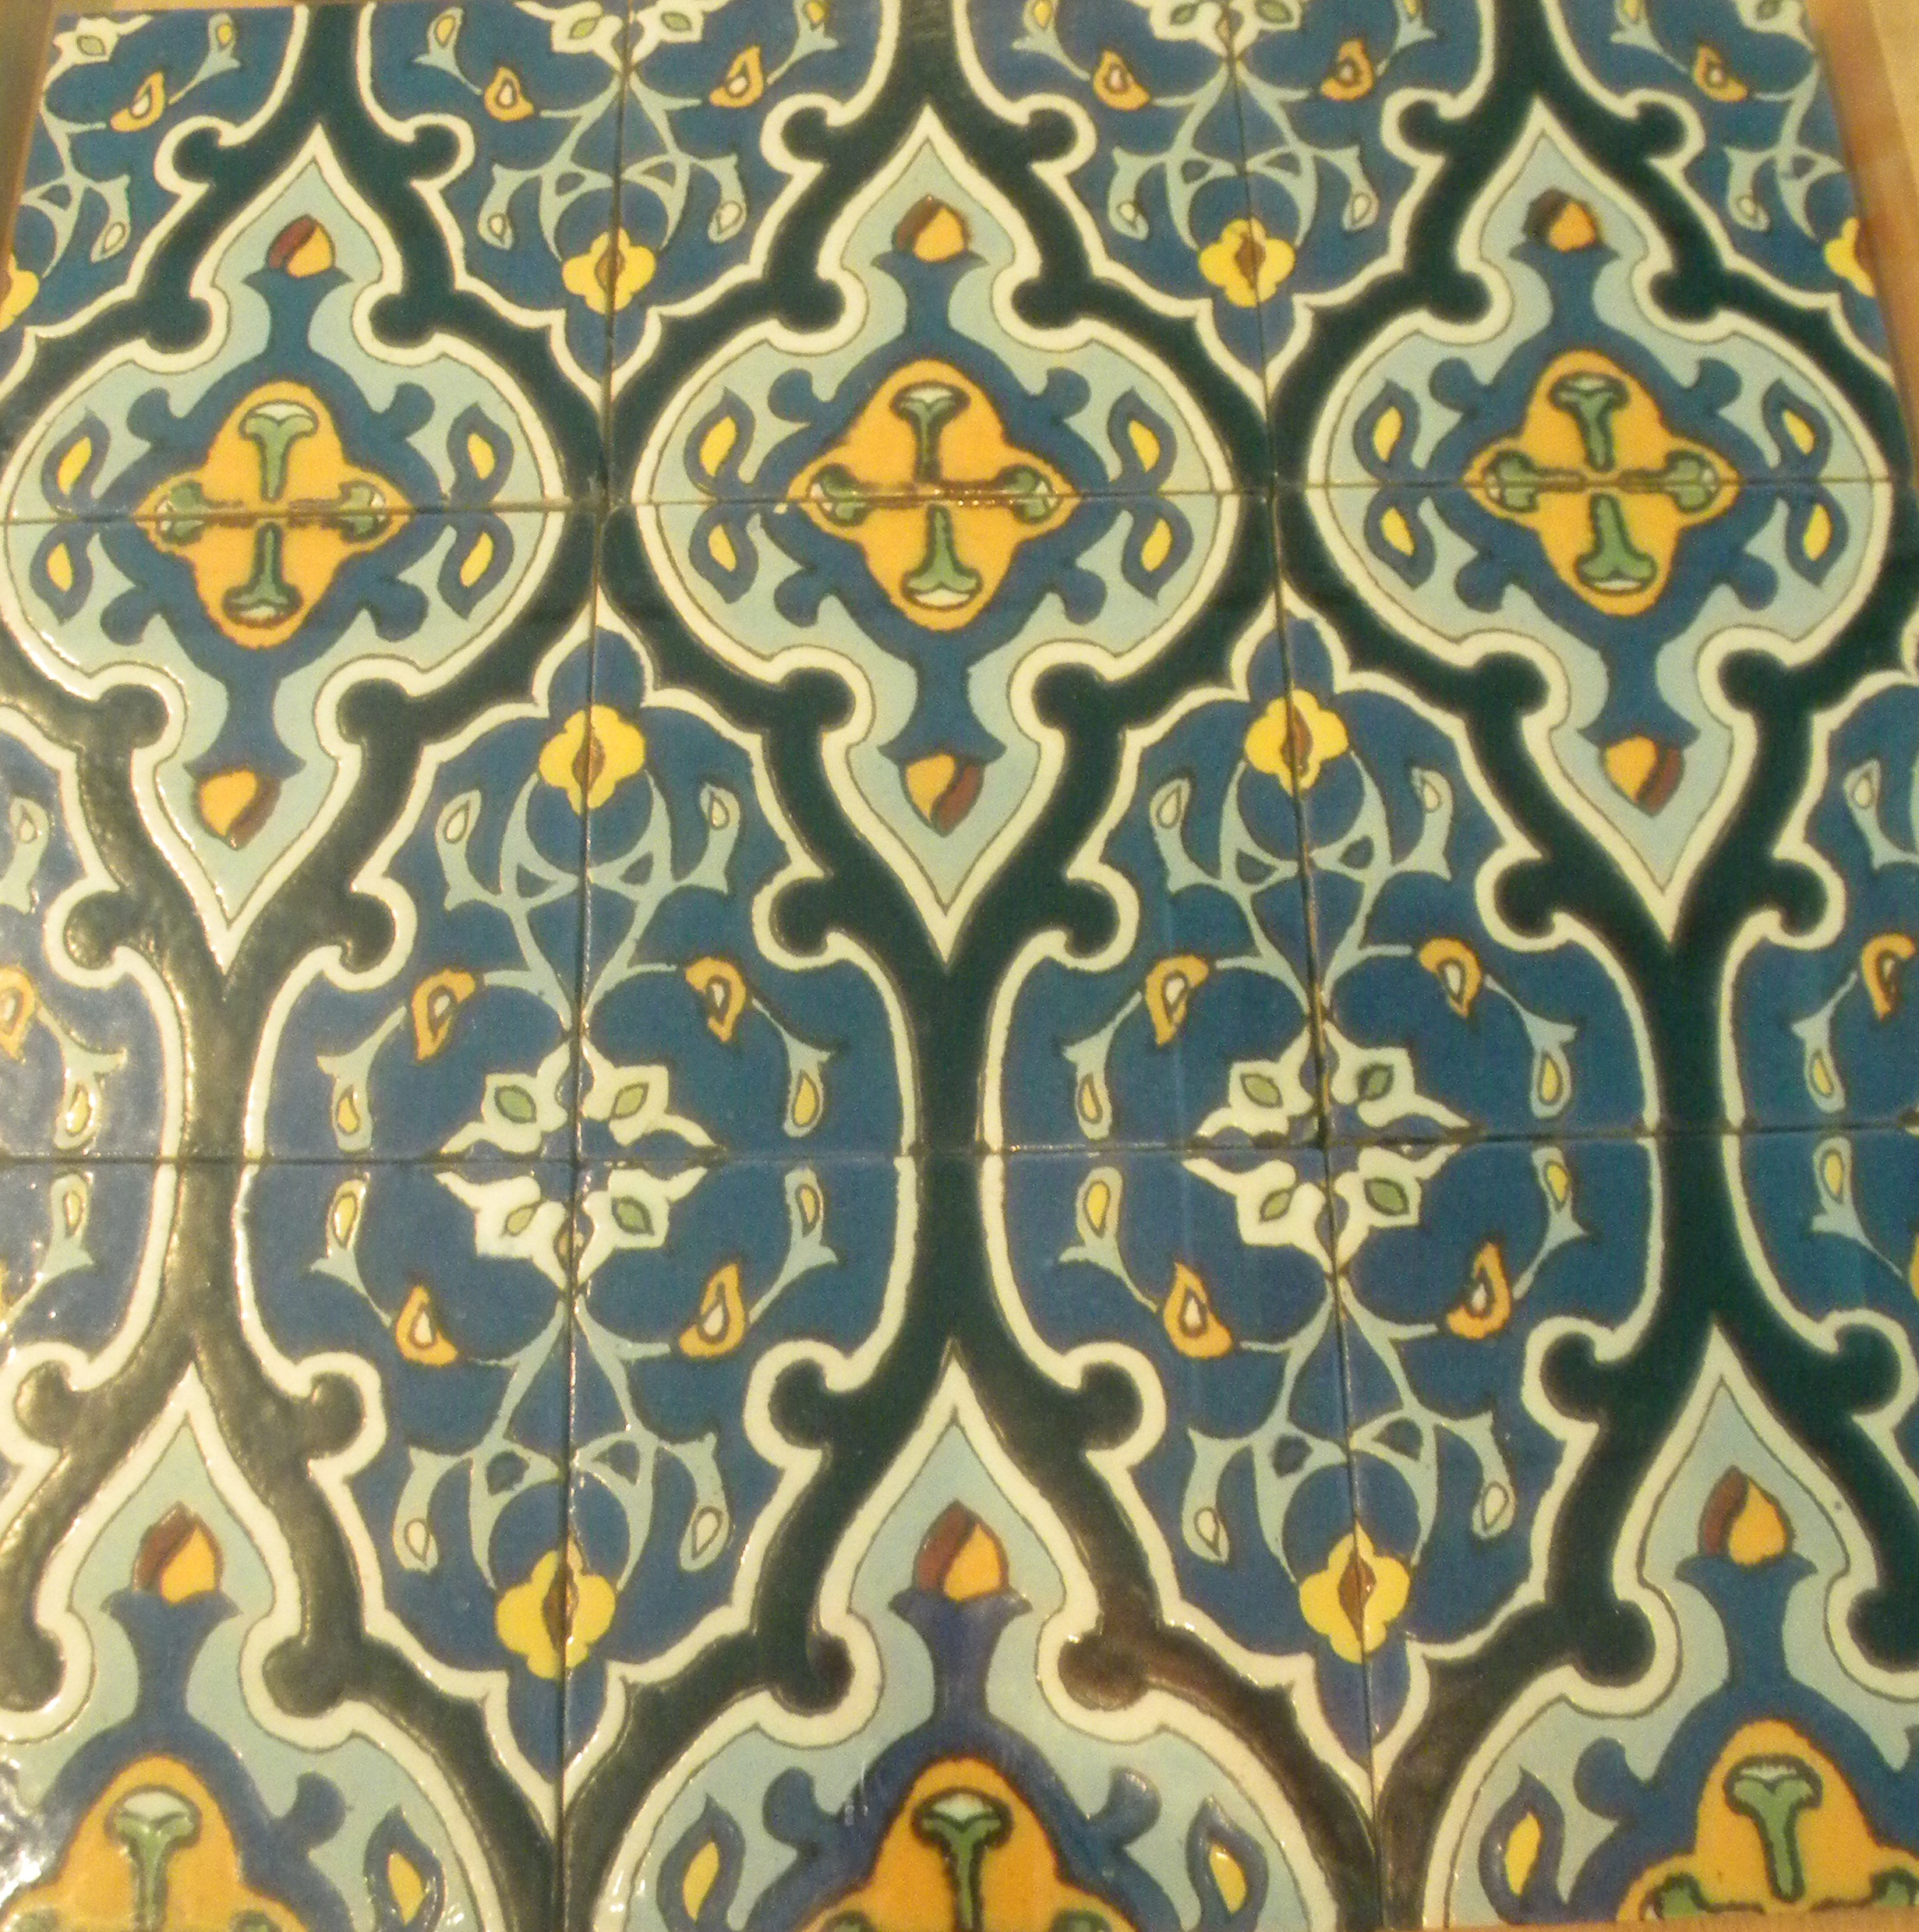 Persian Patterns: Orientalism -Tile Reproductions